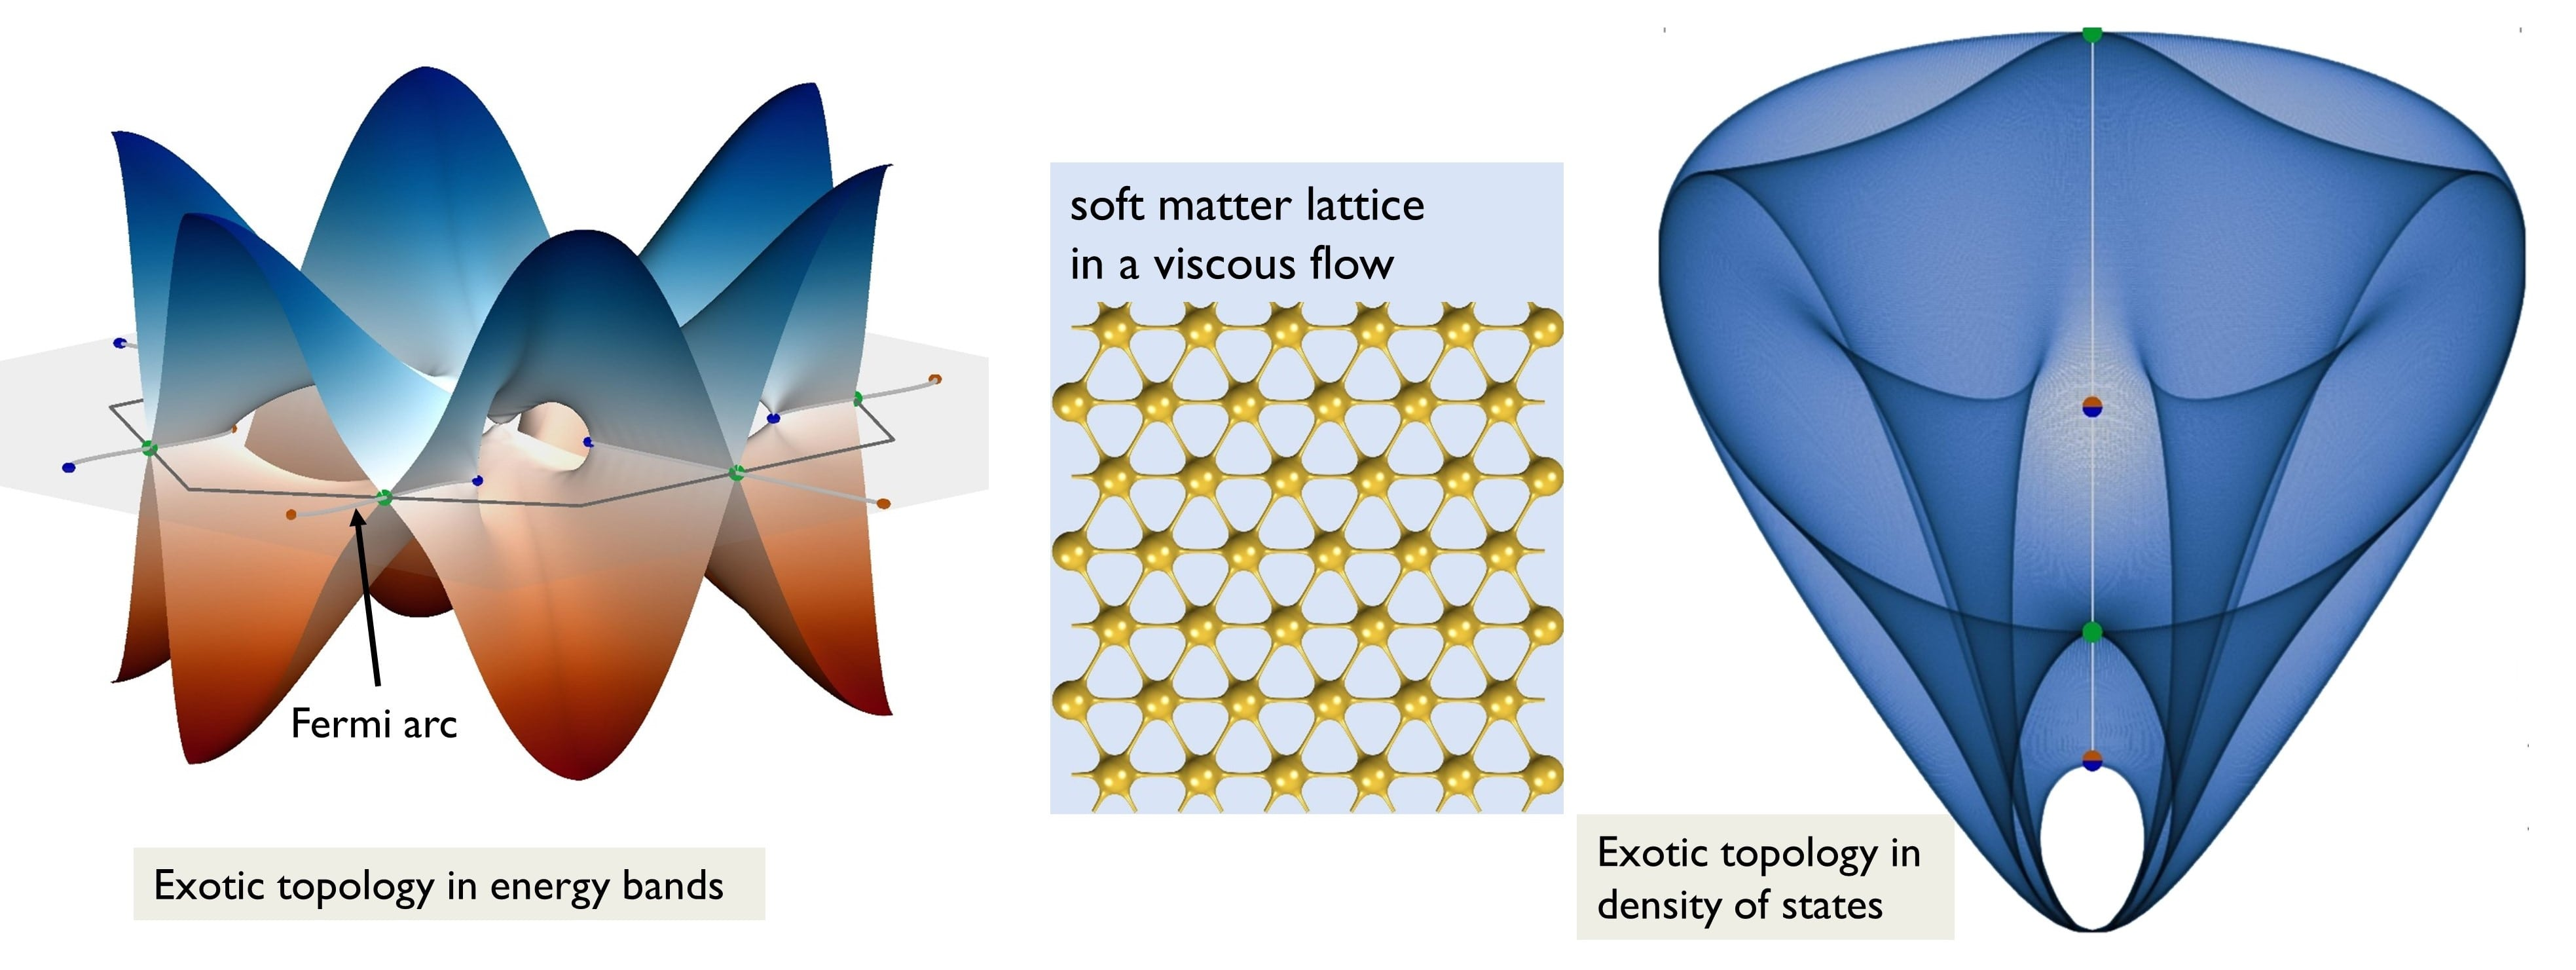 The flow of a soft matter lattice (model) generates exotic topological features in the energy bands (Right), where one can see bulk Fermi arcs, and in the density of states (Left).